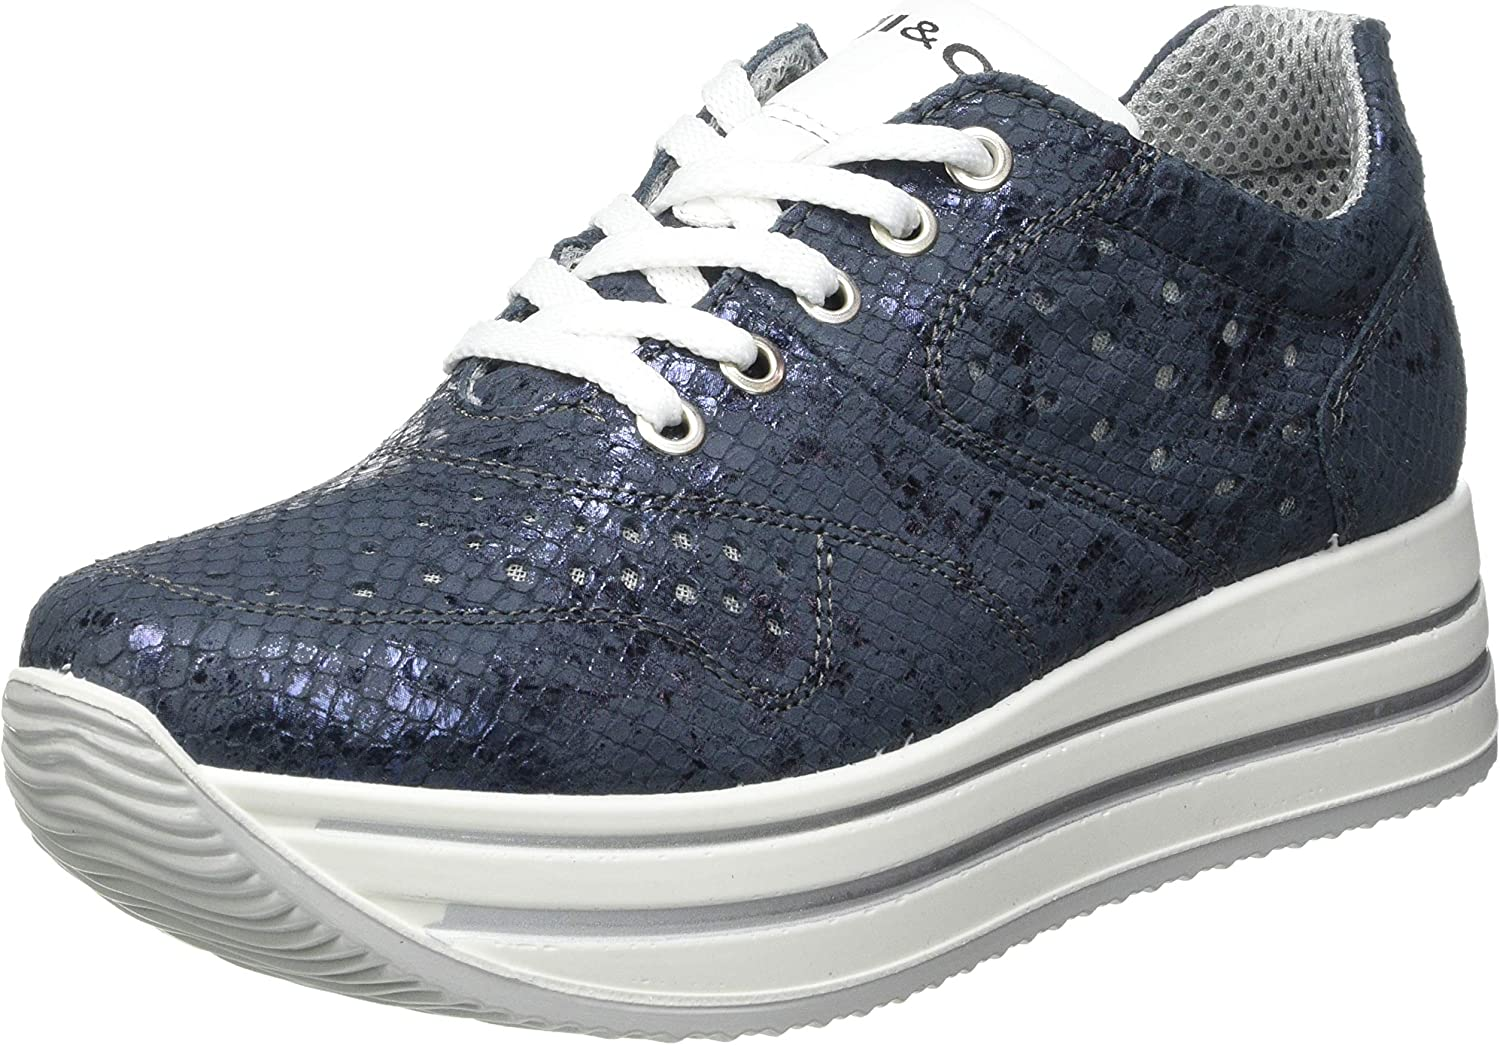 IGICo Women's Sales of SALE items from new works Max 71% OFF Walk Oxford Flat